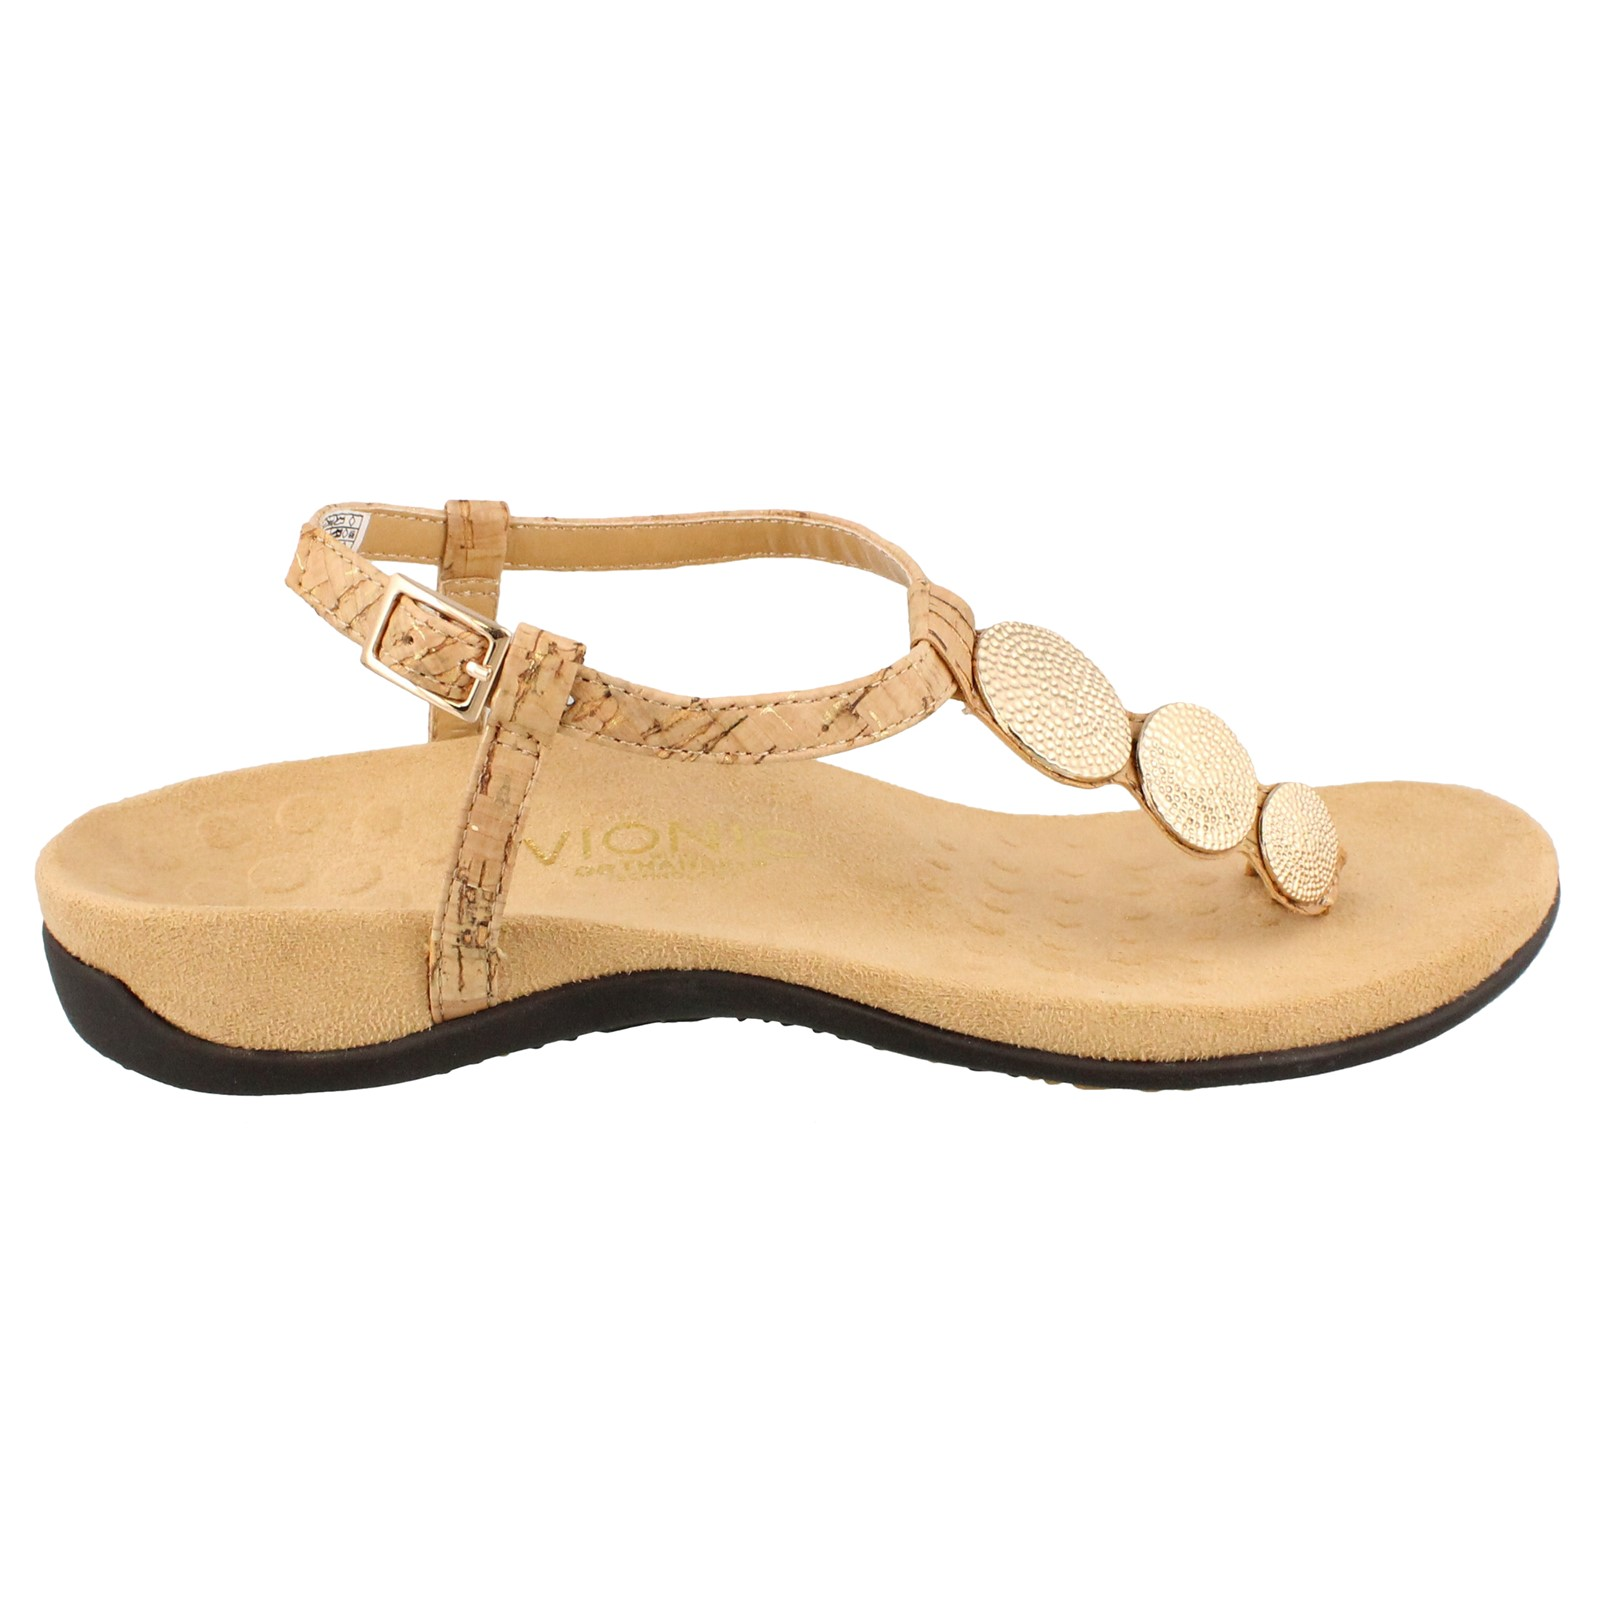 Women's Vionic, Lizbeth Thong Sandals